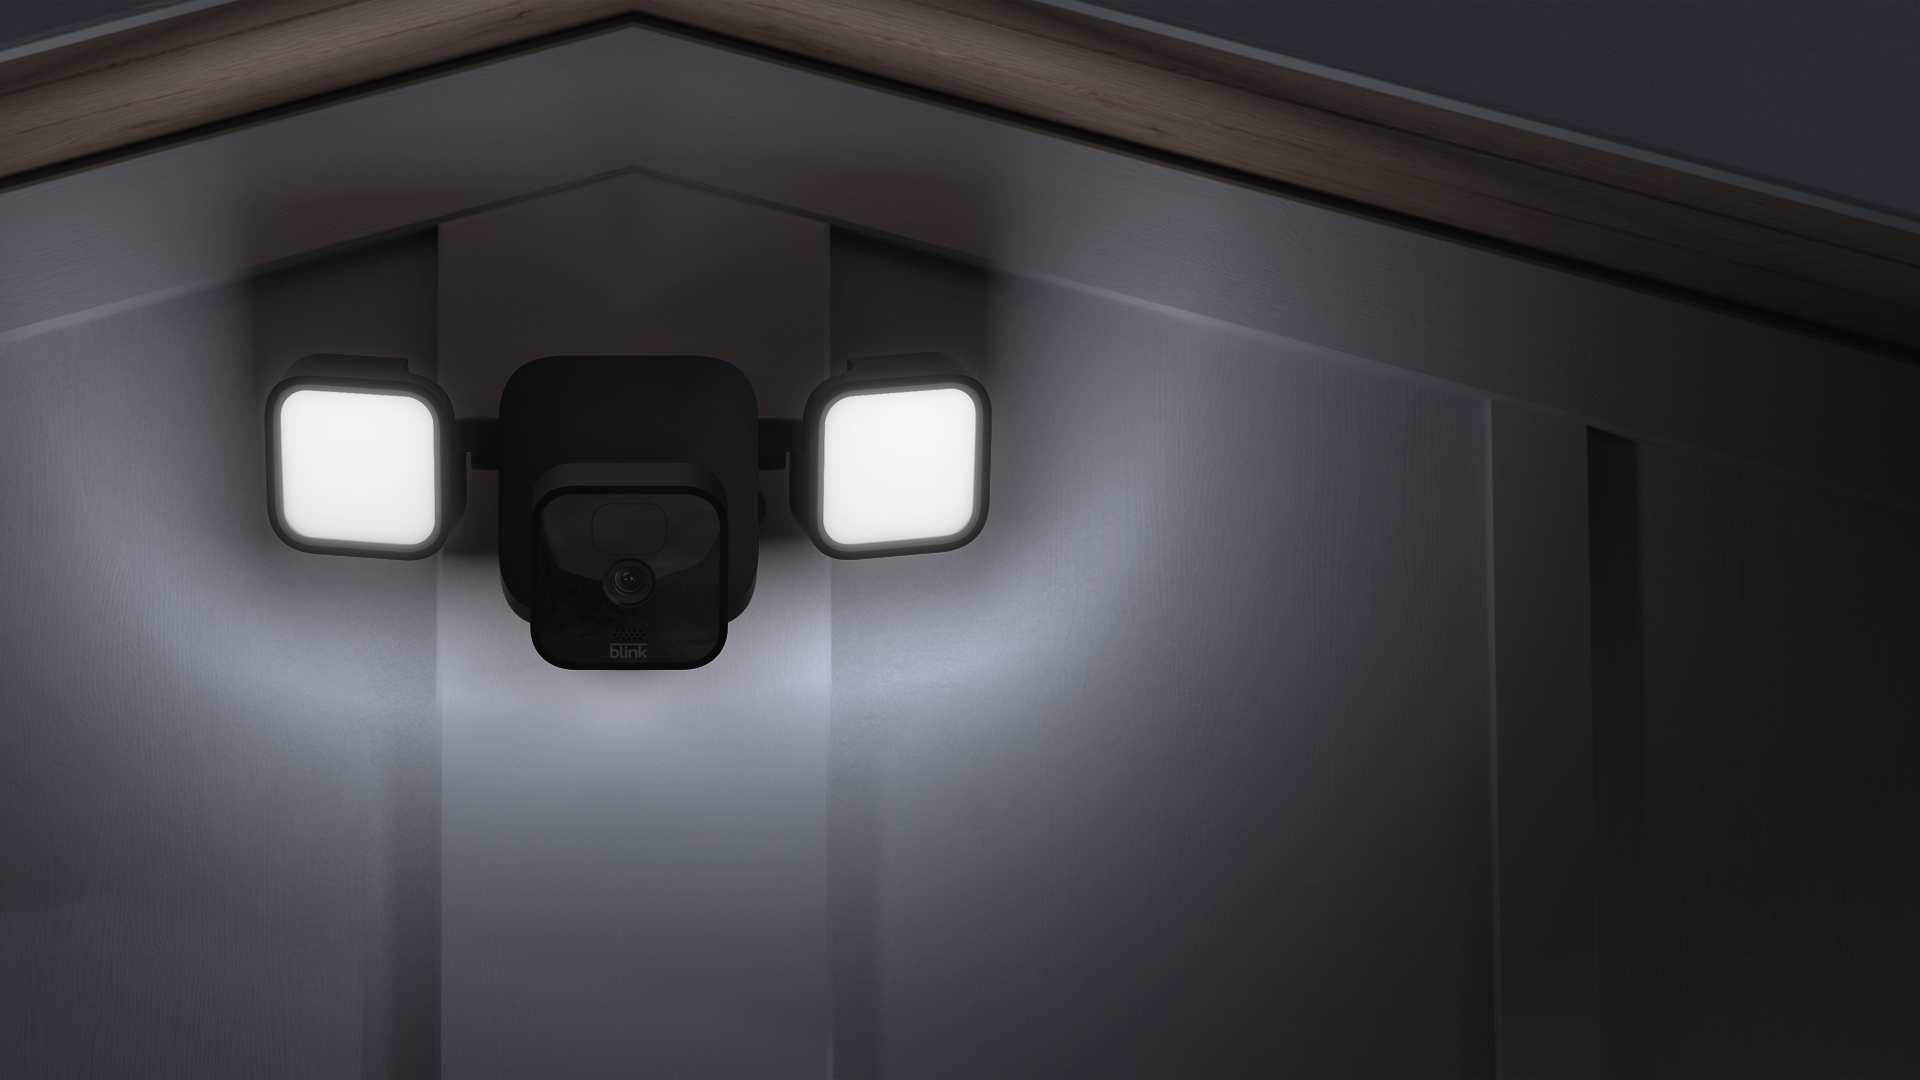 The Blink Floodlight Cam on the side of a home.